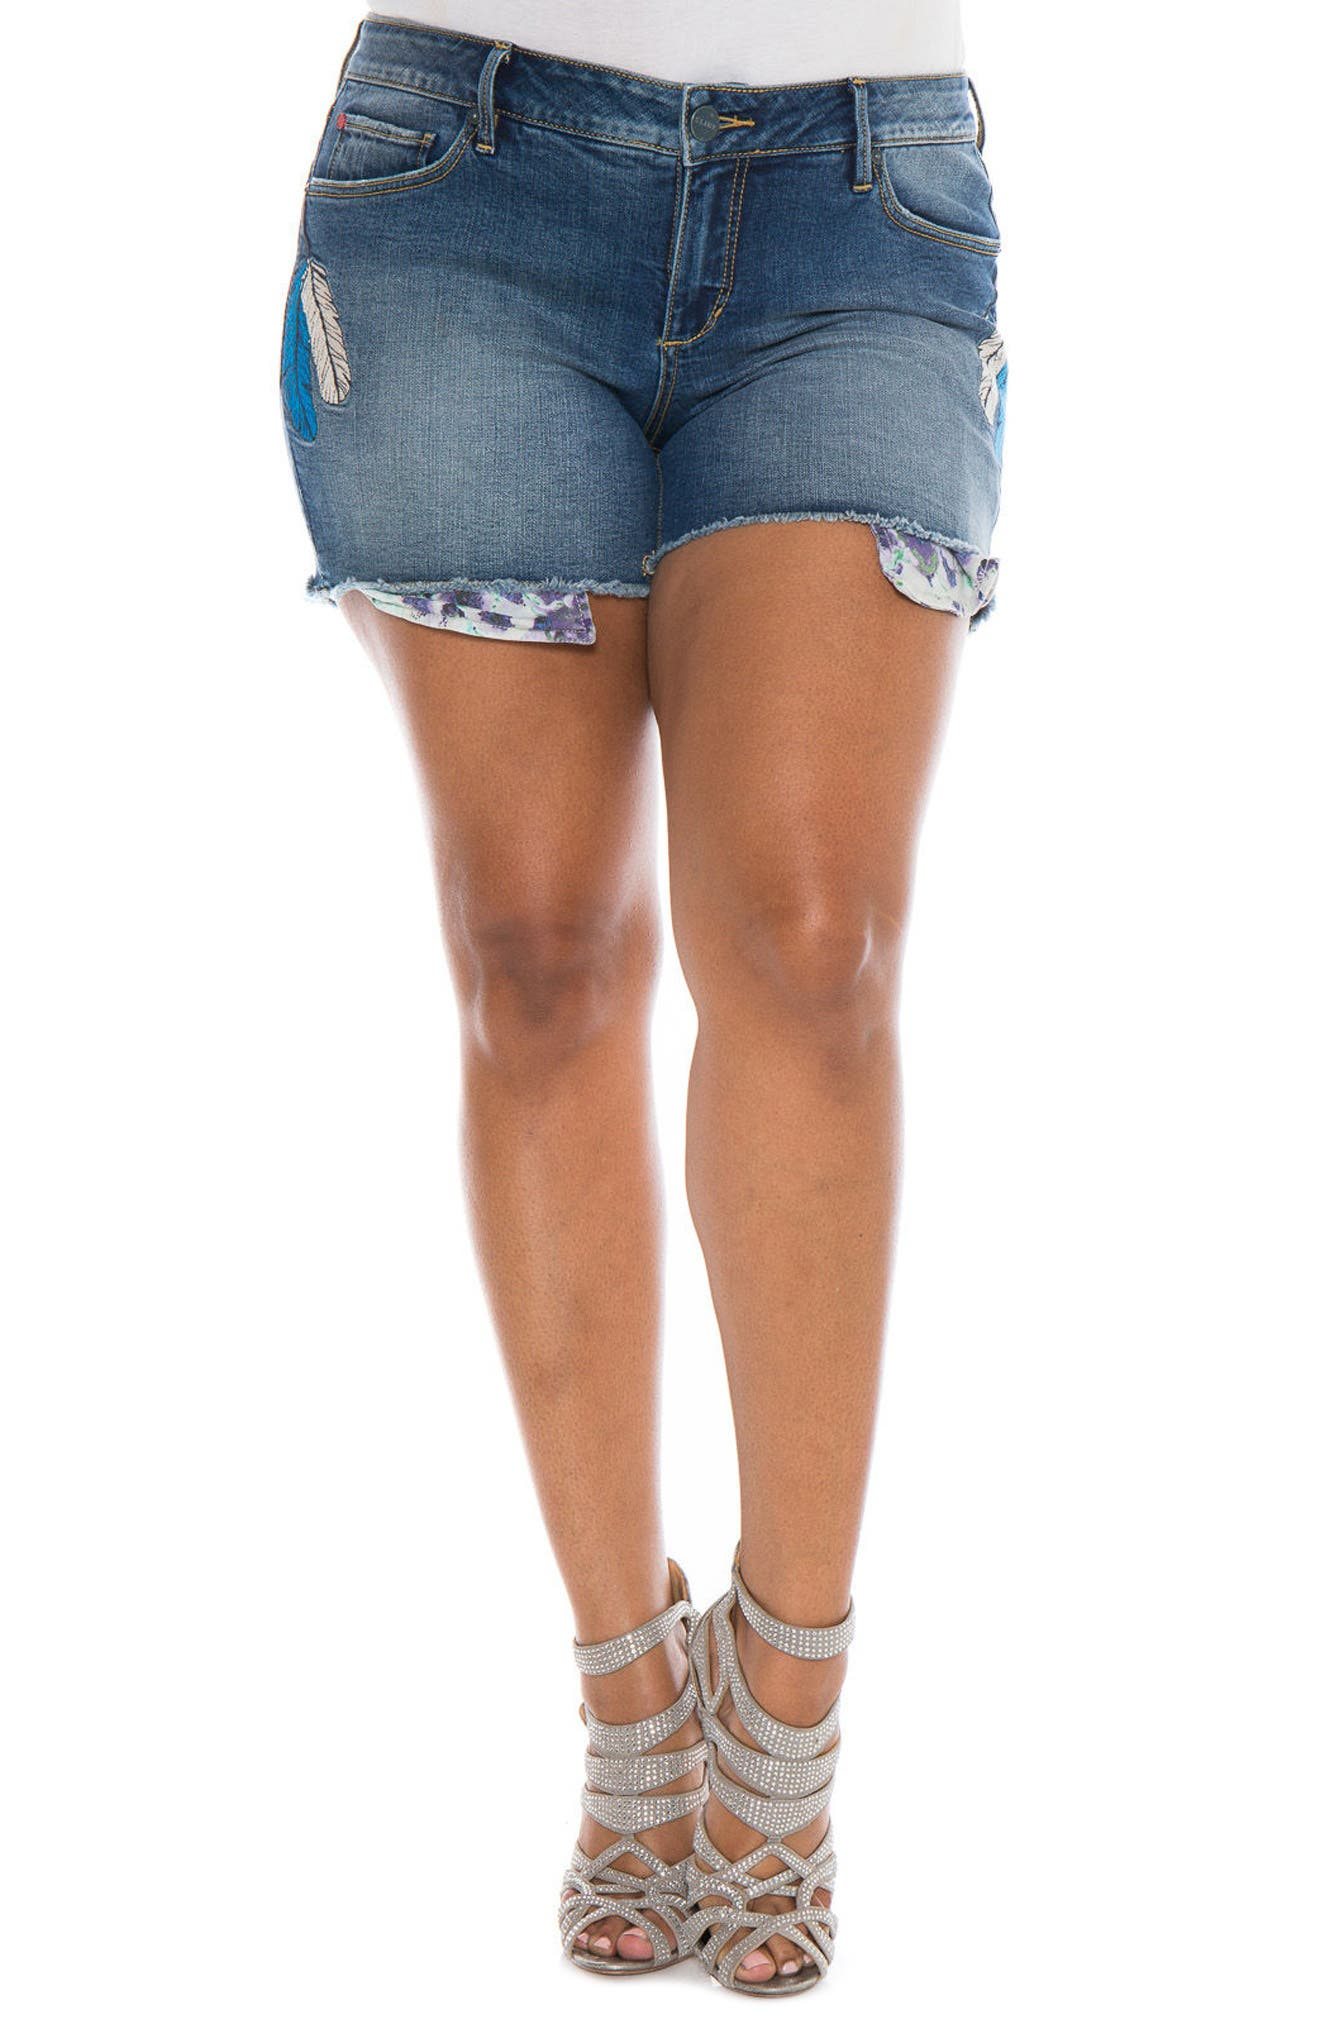 Main Image - SLINK Jeans Embroidered Cutoff Denim Shorts (Plus Size)